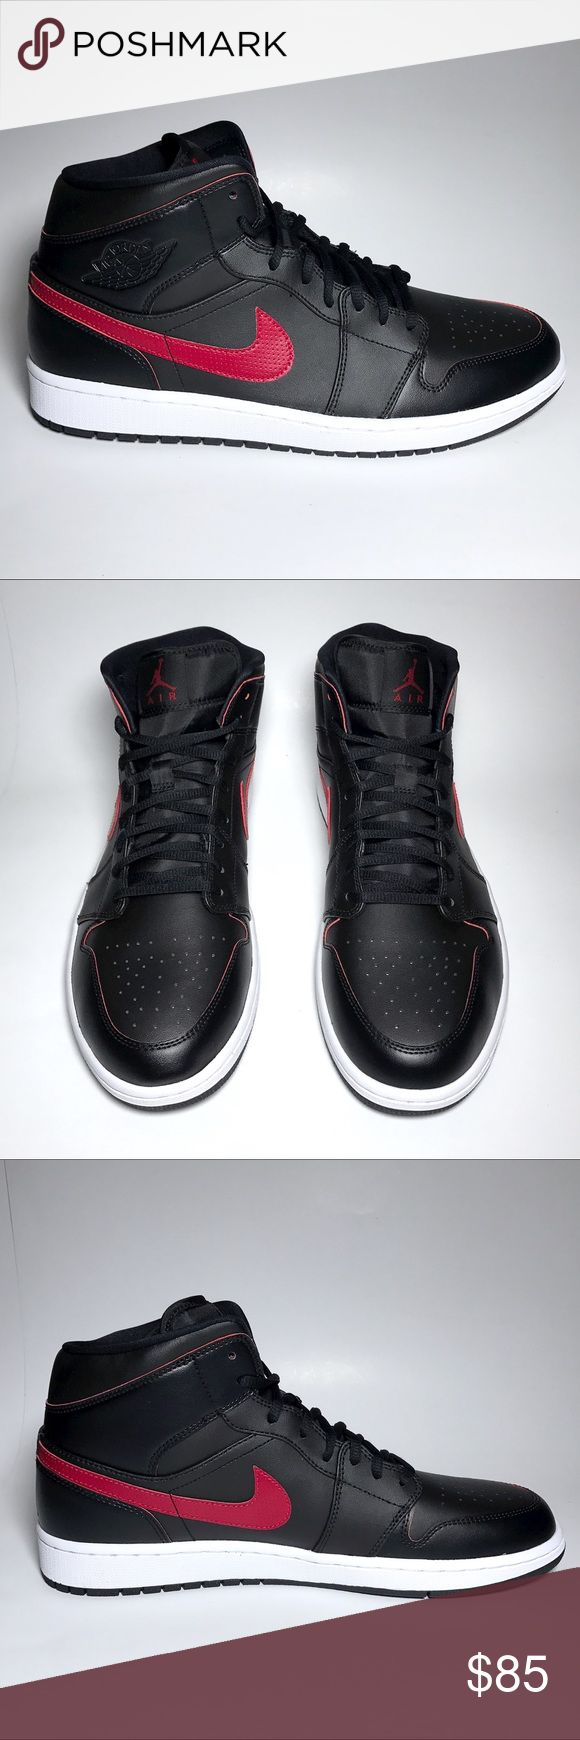 NIB Jordan 1 Mid Black Red Basketball Shoes These are BRAND NEW IN ORIGINAL BOX. Never worn. Completely DEADSTOCK. The sneakers pictured are the shoes you will receive. Check my ratings, 100% Guaranteed to be authentic. Jordan Shoes Sneakers